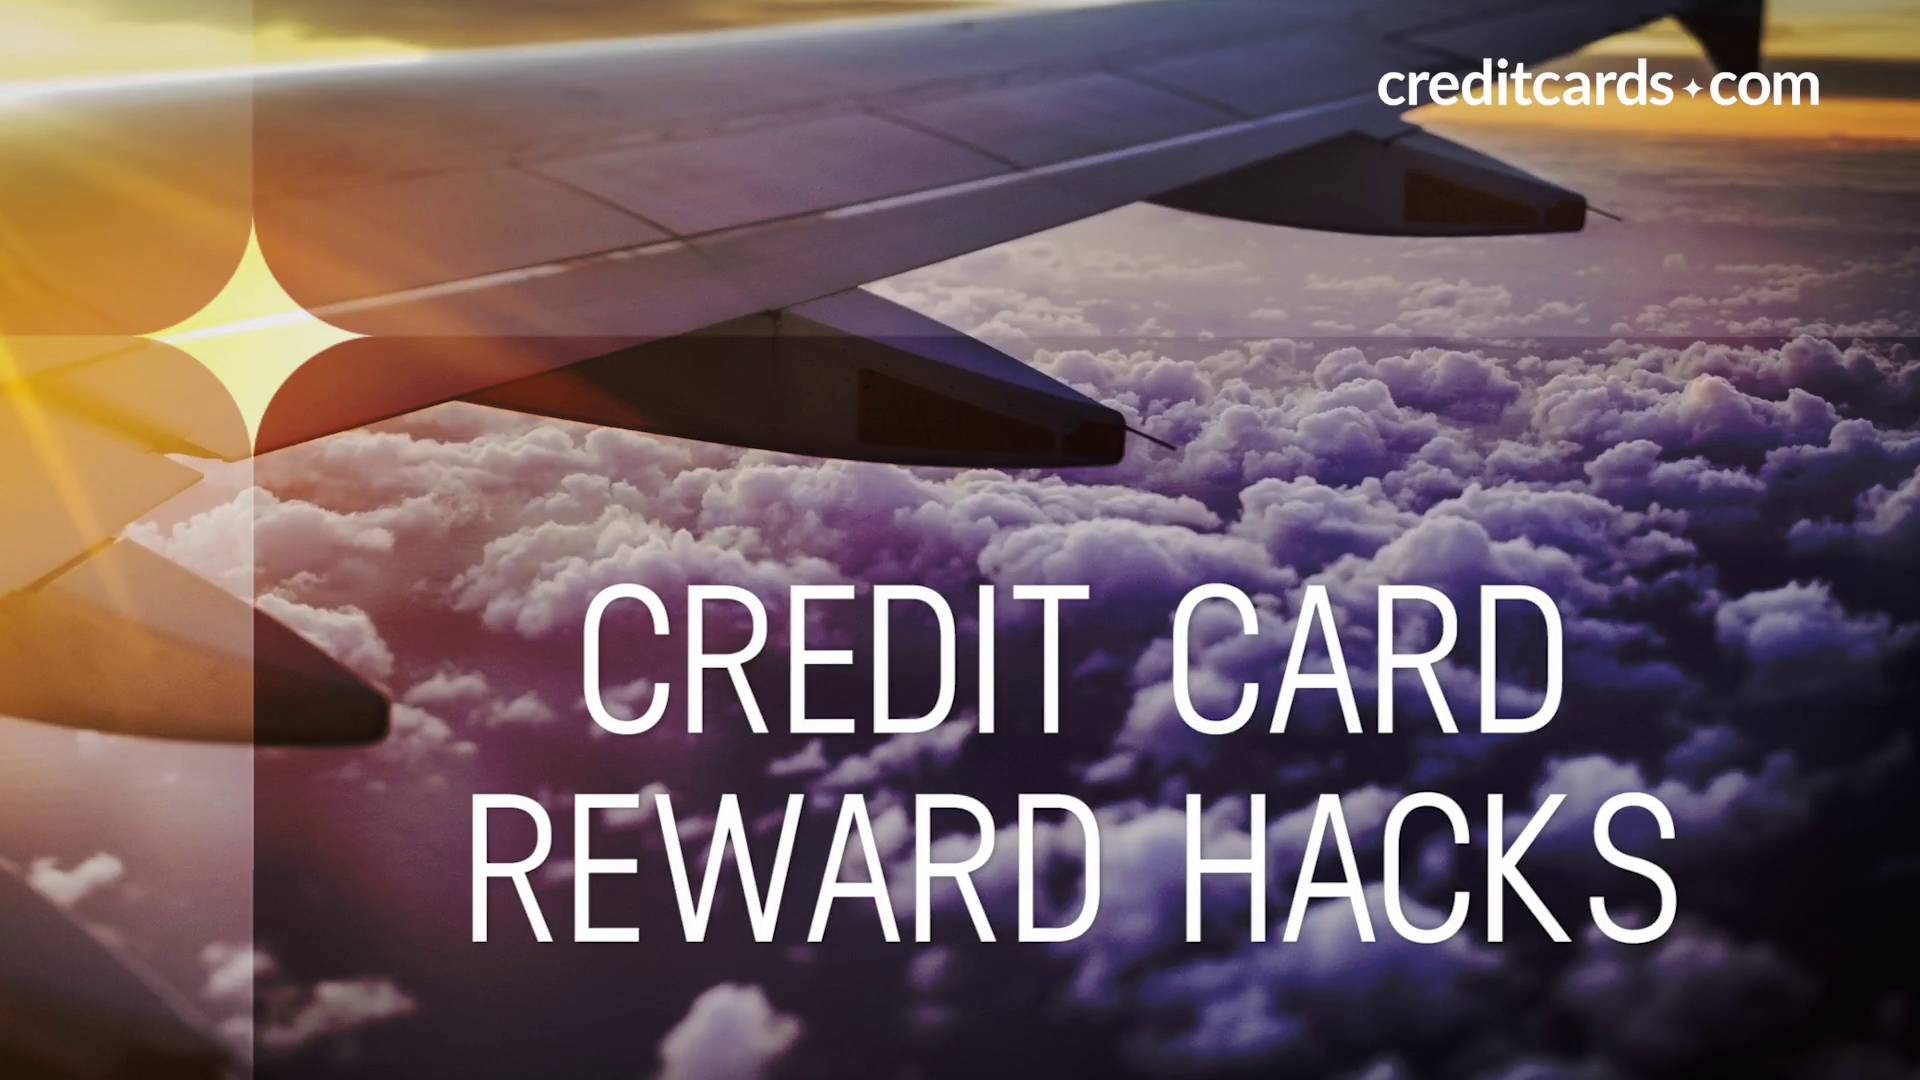 Protect your credit score when churning rewards cards - CreditCards.com